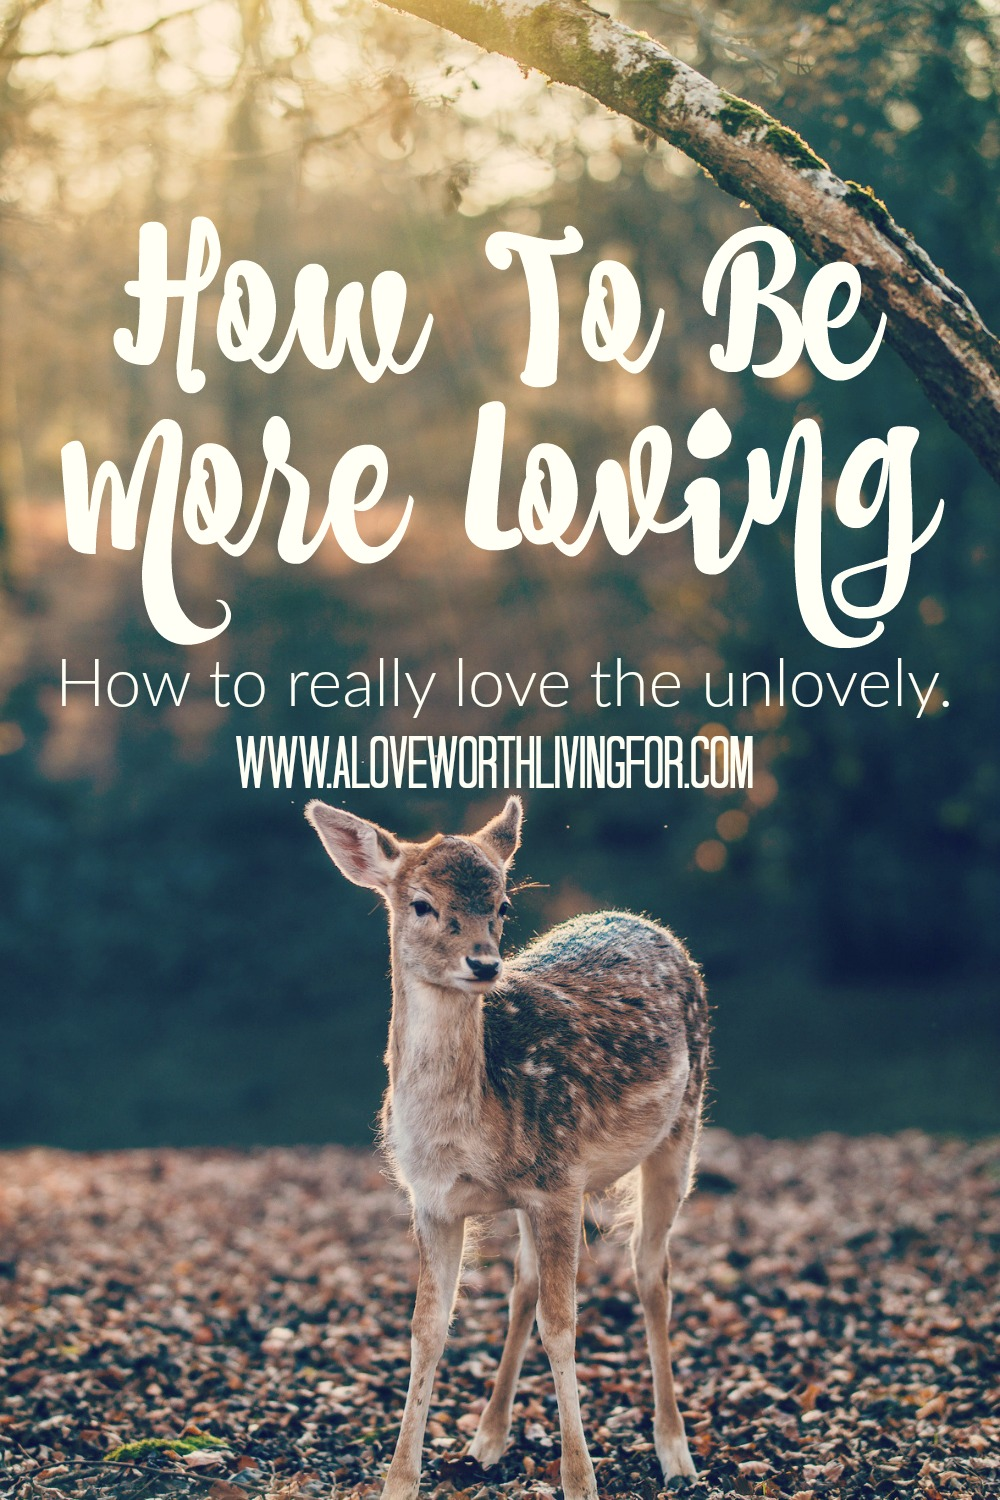 People are difficult and messy. Yet we are told to love others. It's our job to reach out and love the unlovely but how? The answer may surprise you!